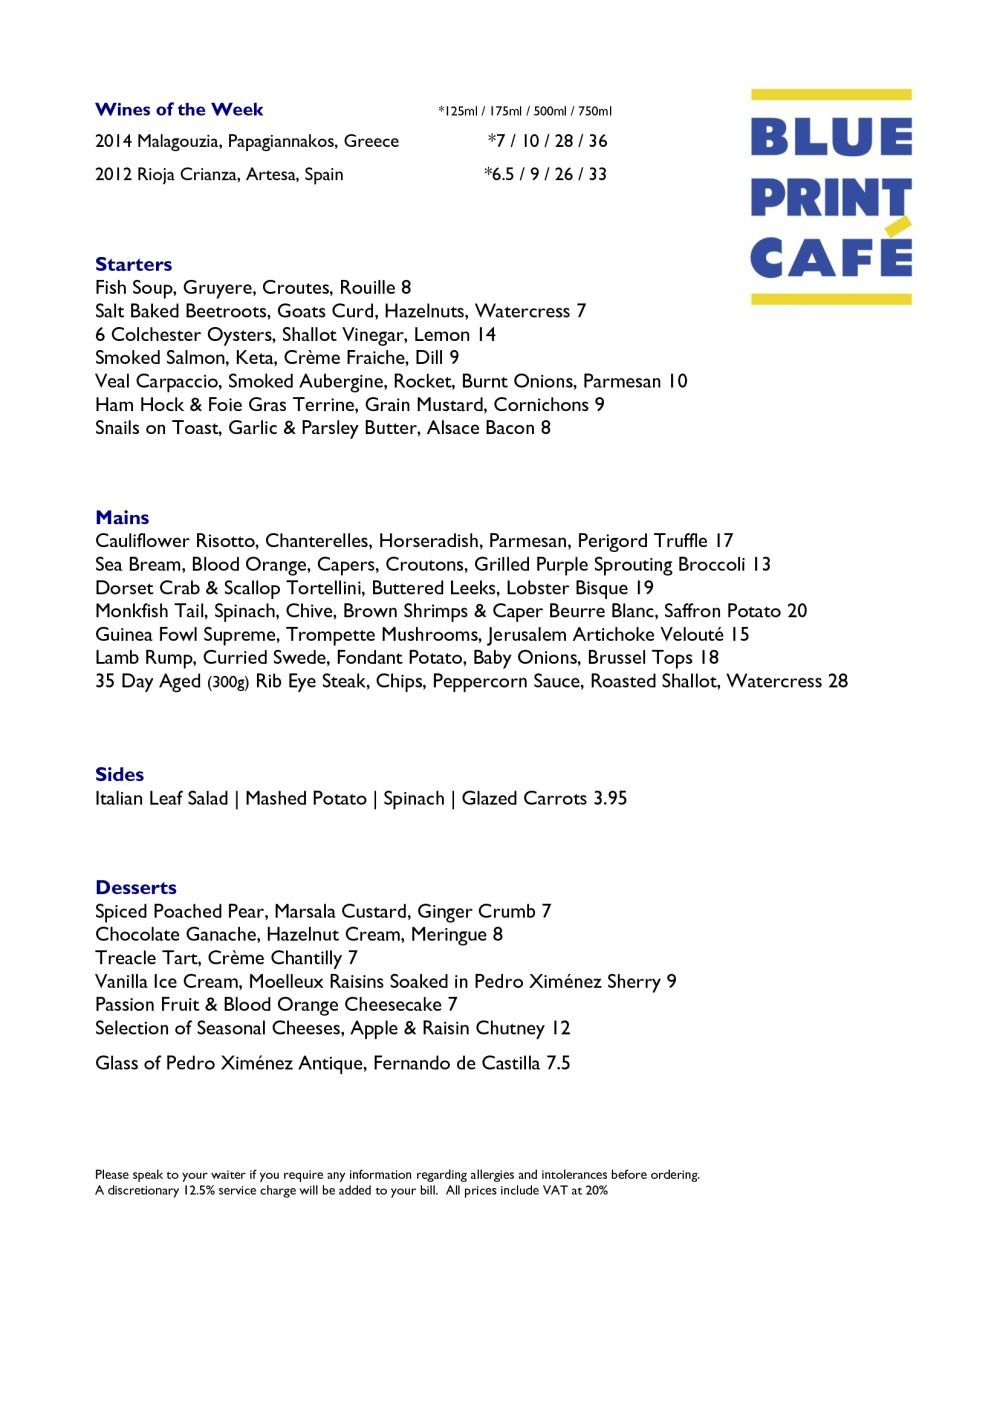 A la carte blueprint cafe menu dd london eatery pinterest a la carte blueprint cafe menu dd london malvernweather